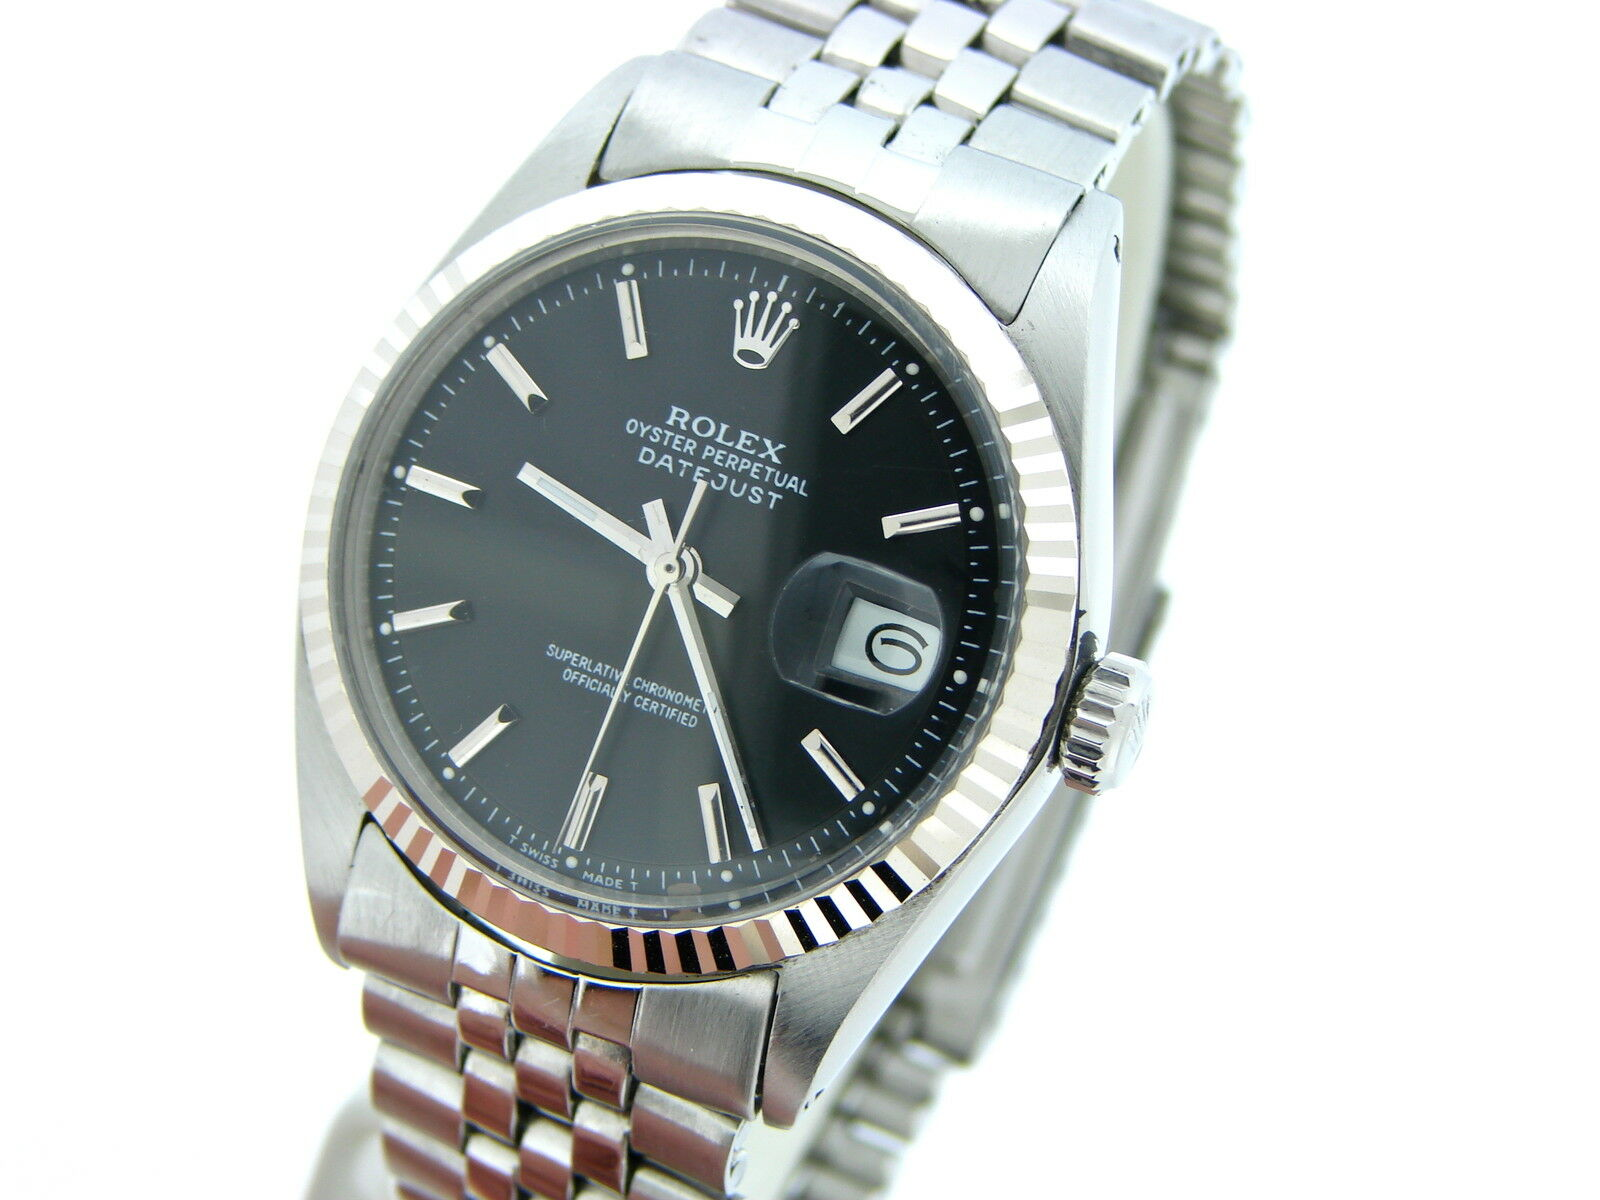 Mens Rolex Stainless Steel/18K White Gold Datejust Black w/Jubilee Band 1601